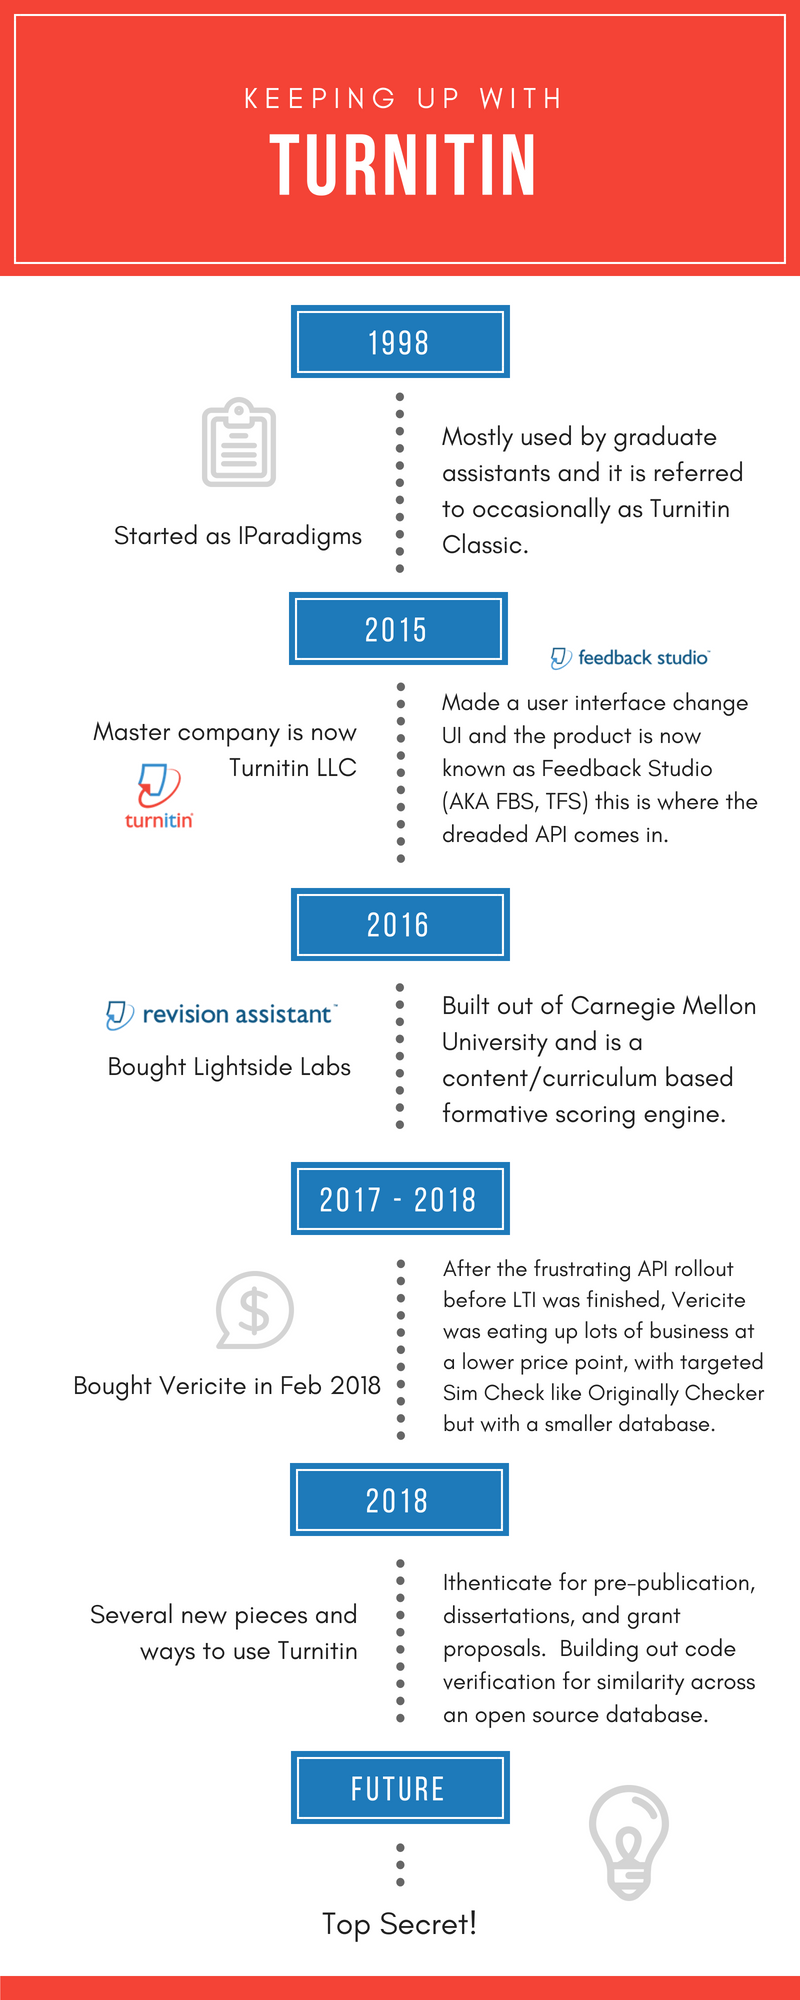 Turnitin Timeline & Acronyms